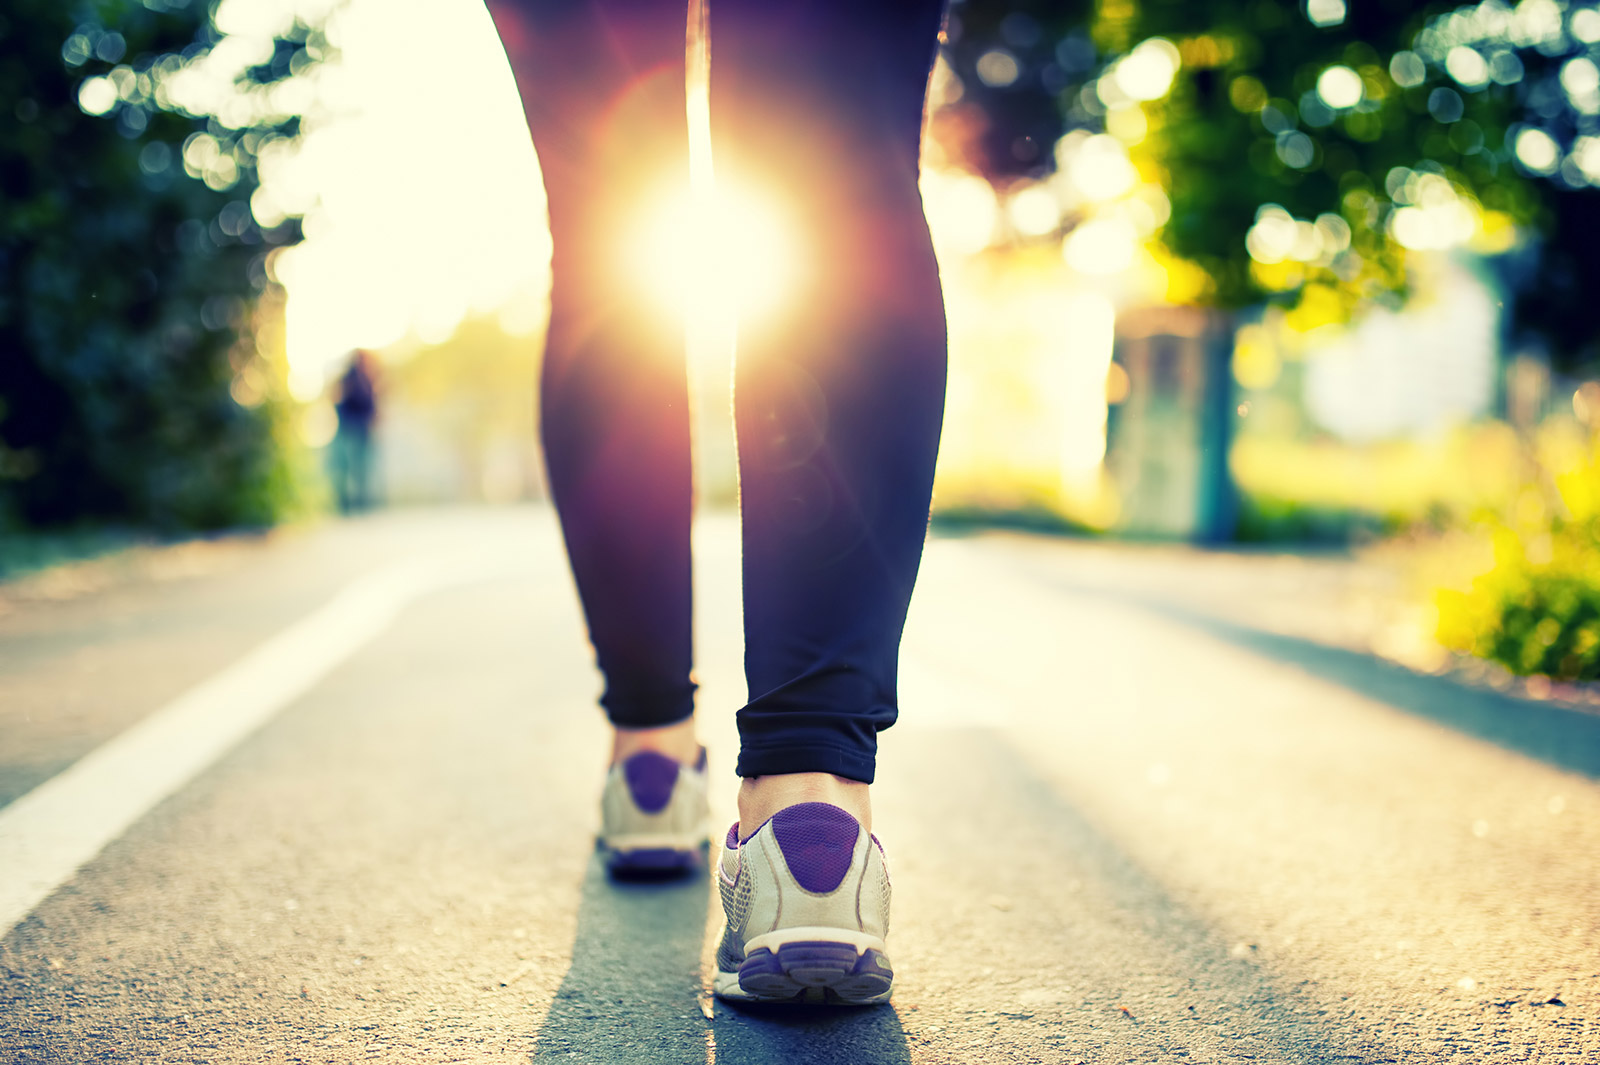 photodune-14041162-closeup-of-woman-athlete-feet-and-shoes-while-running-in-park-l